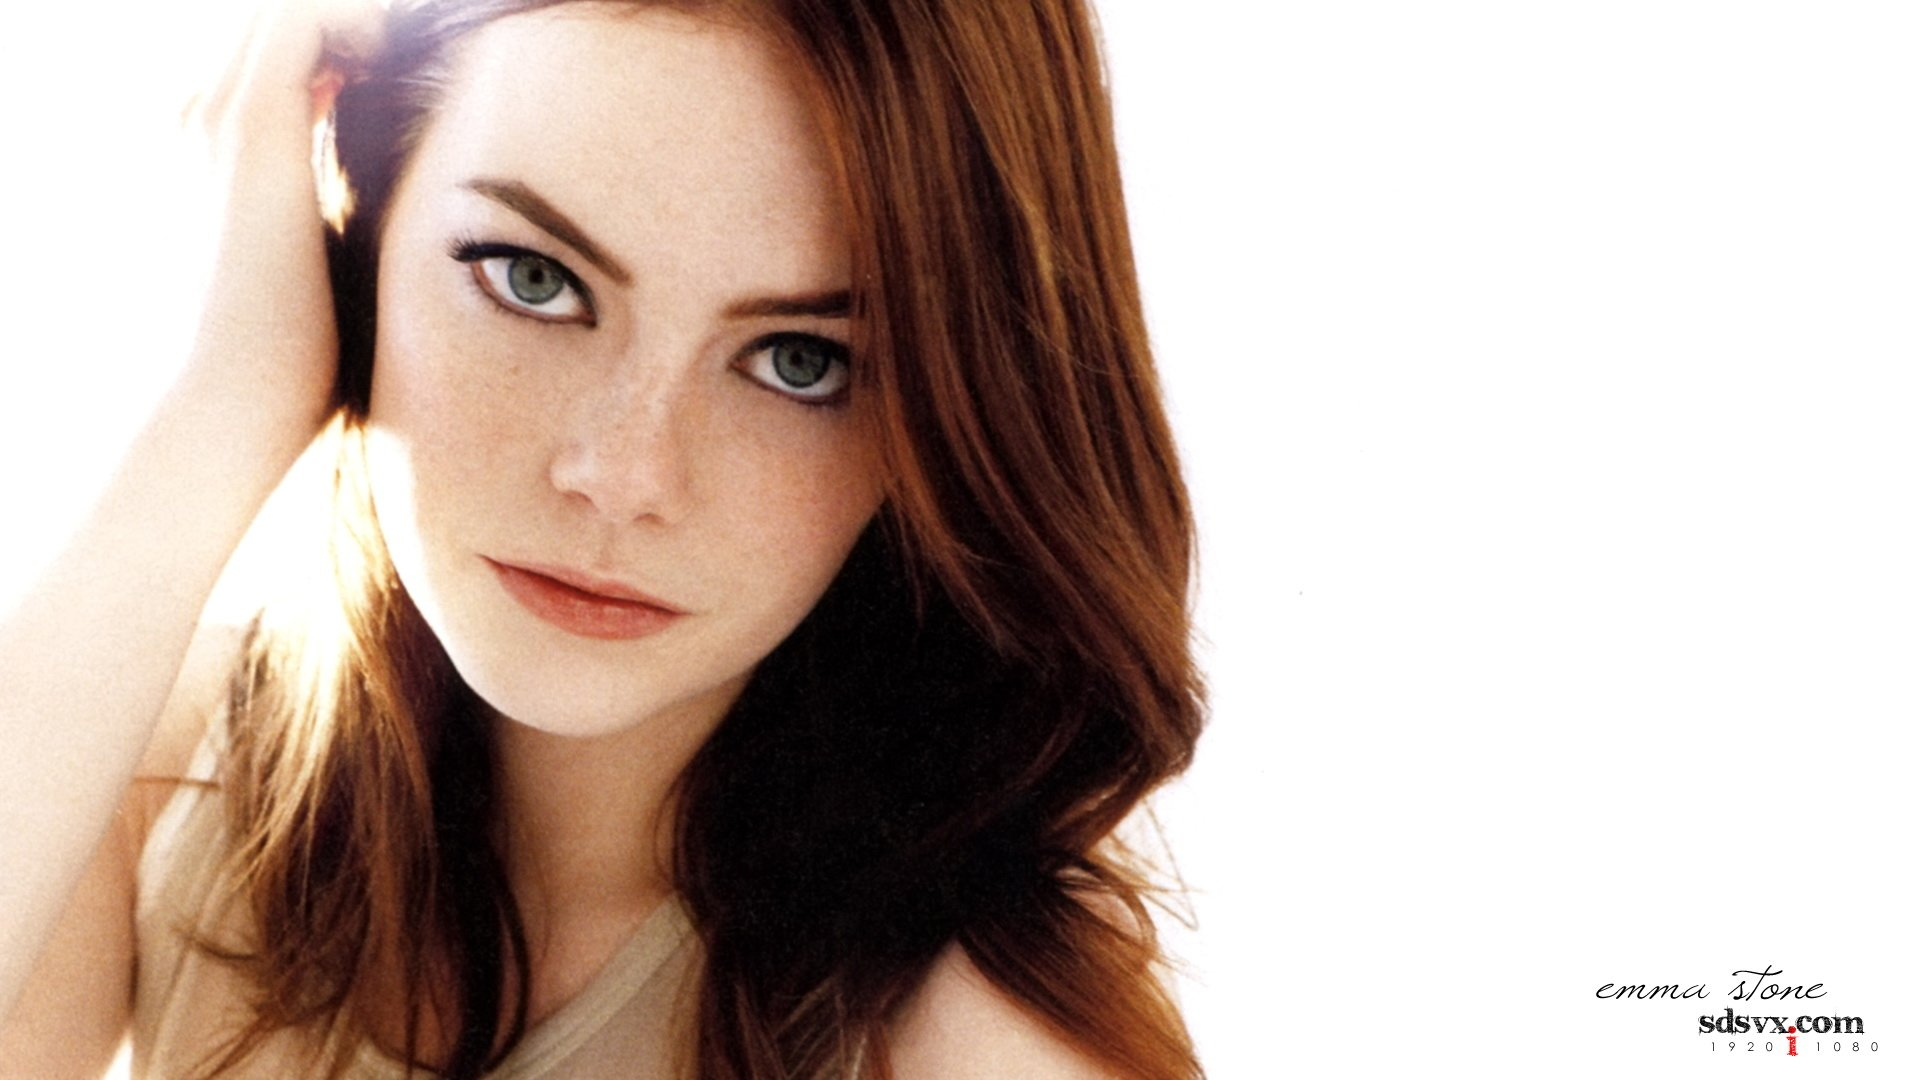 Celebrity - Emma Stone  Wallpaper